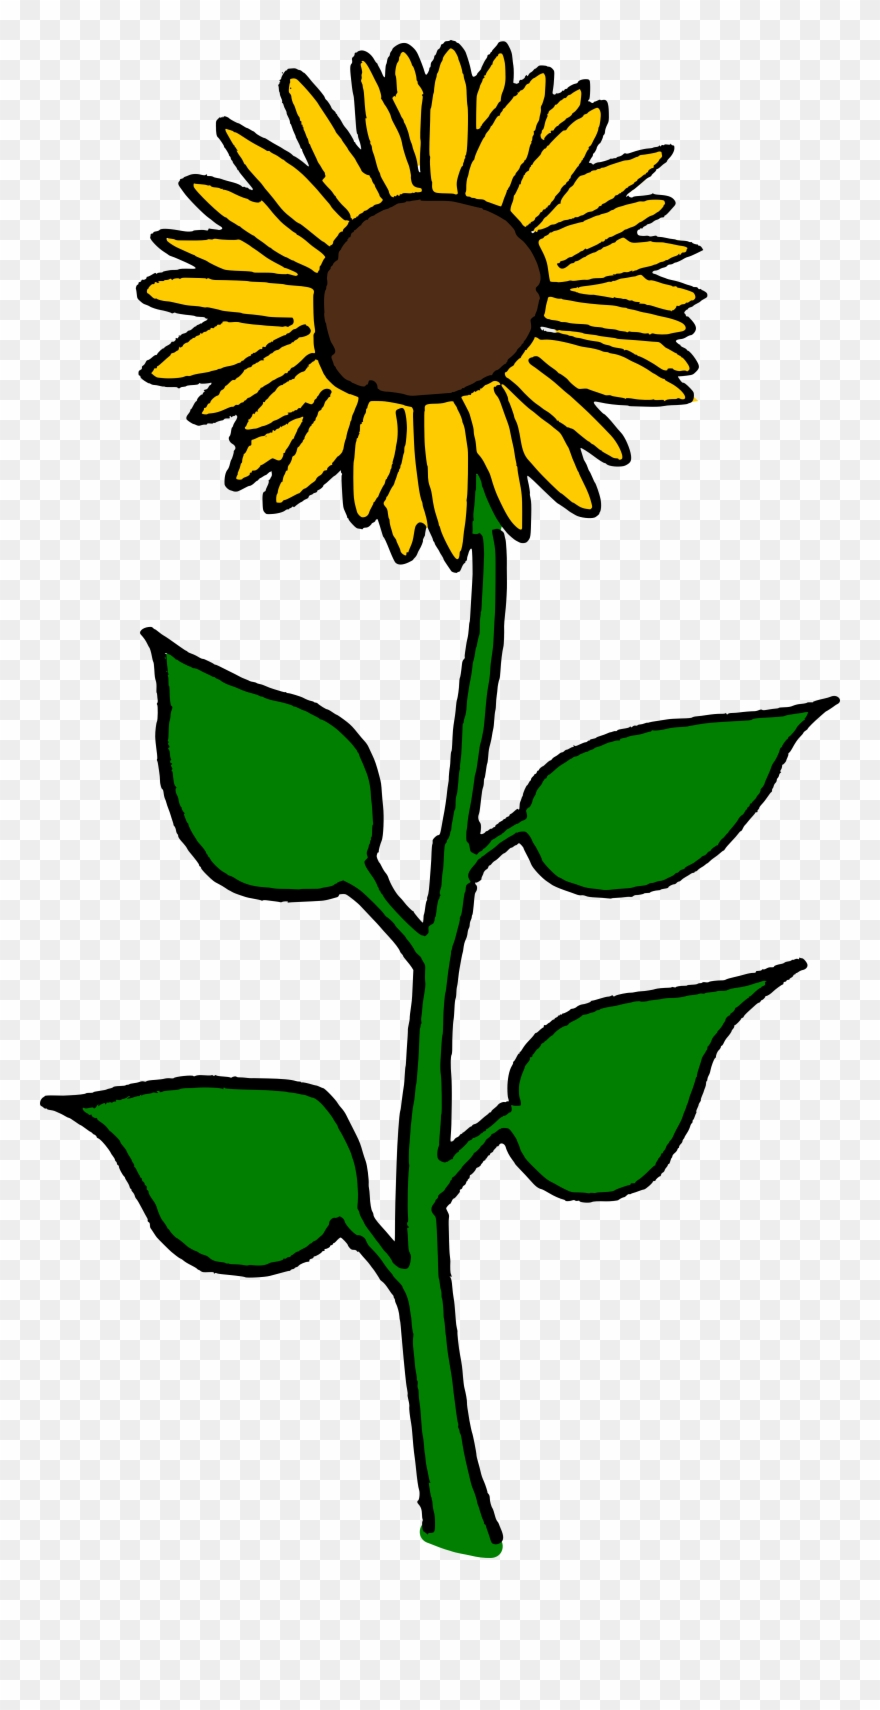 Clipart flwers clip art black and white library Flower Clipart Sunflower - Sun Flowers Clip Art - Png Download ... clip art black and white library